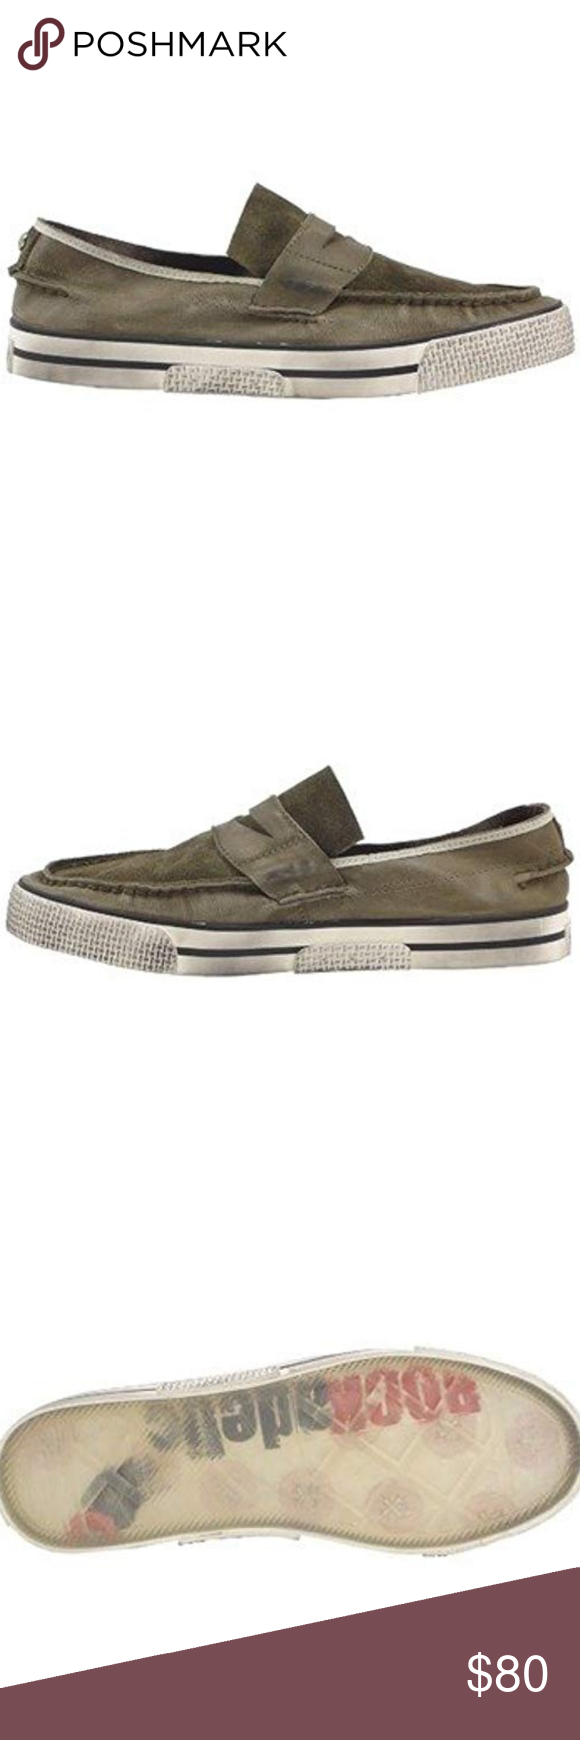 Rockadelic Riff Boat Shoes 11m Rockadelic Riff Boat Shoes 11m brand new  condition released in 2011 49c05ad19aac